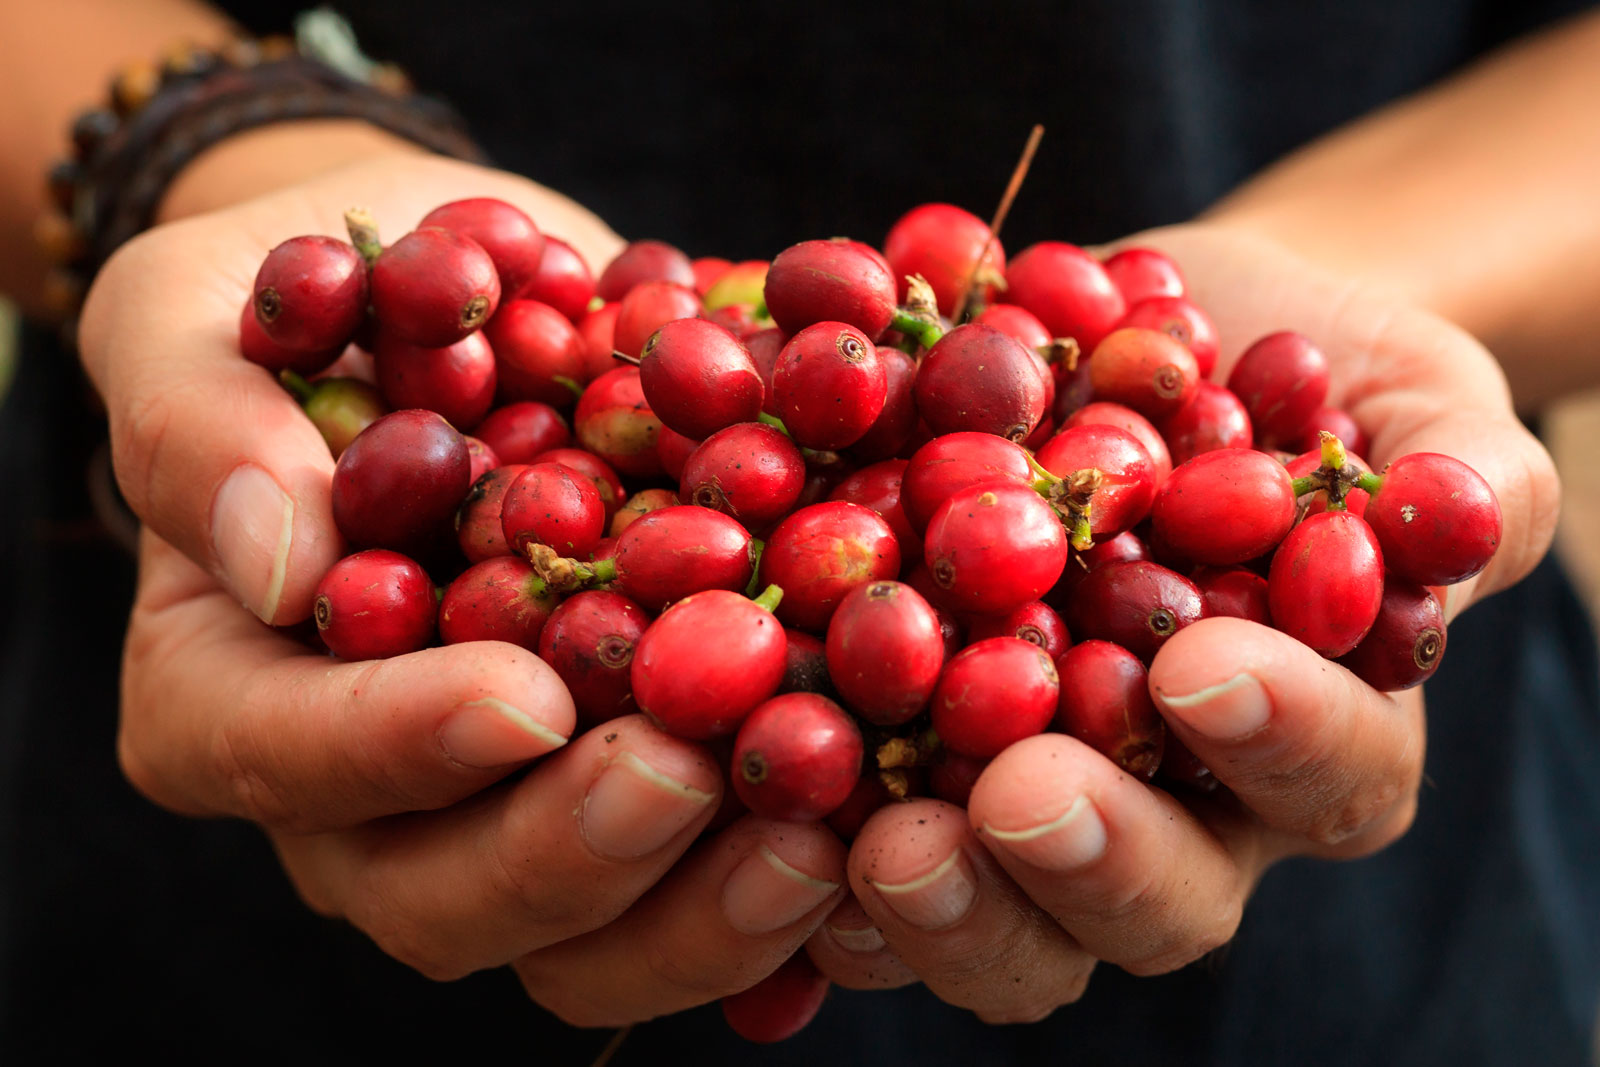 Hands with coffee cherries